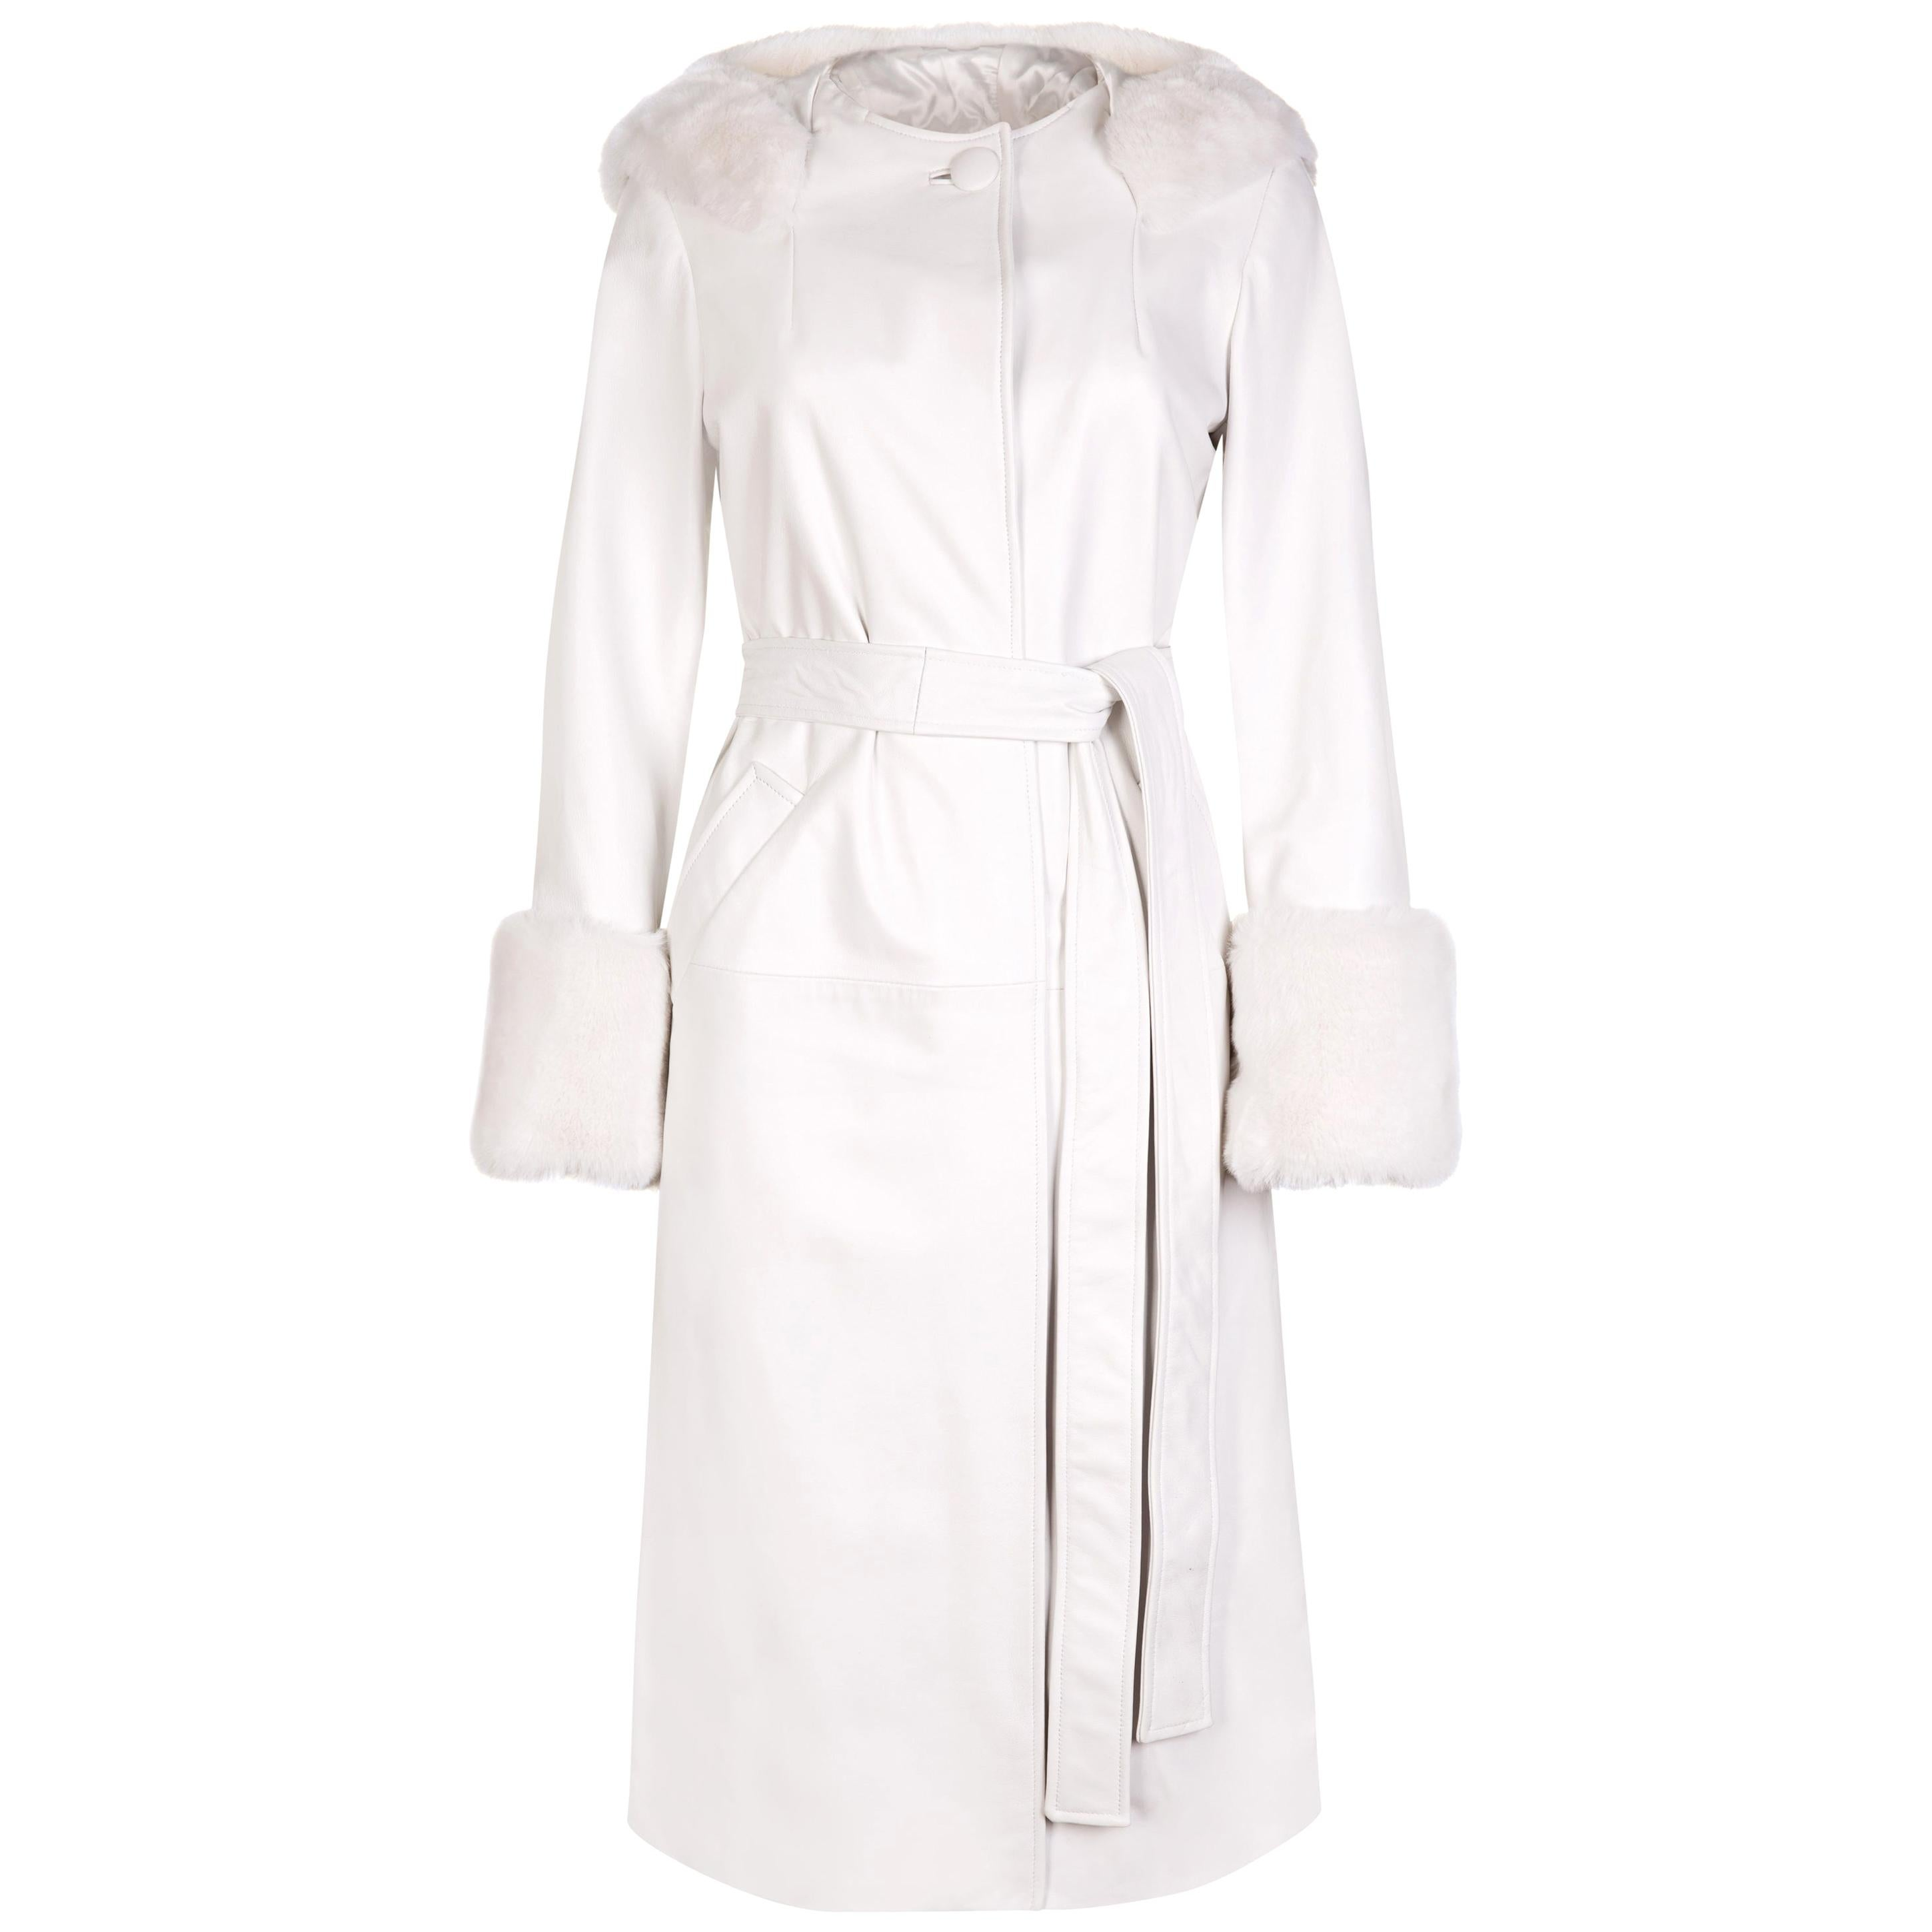 Verheyen Aurora Hooded Leather Trench Coat in White with Faux Fur - Size uk 6